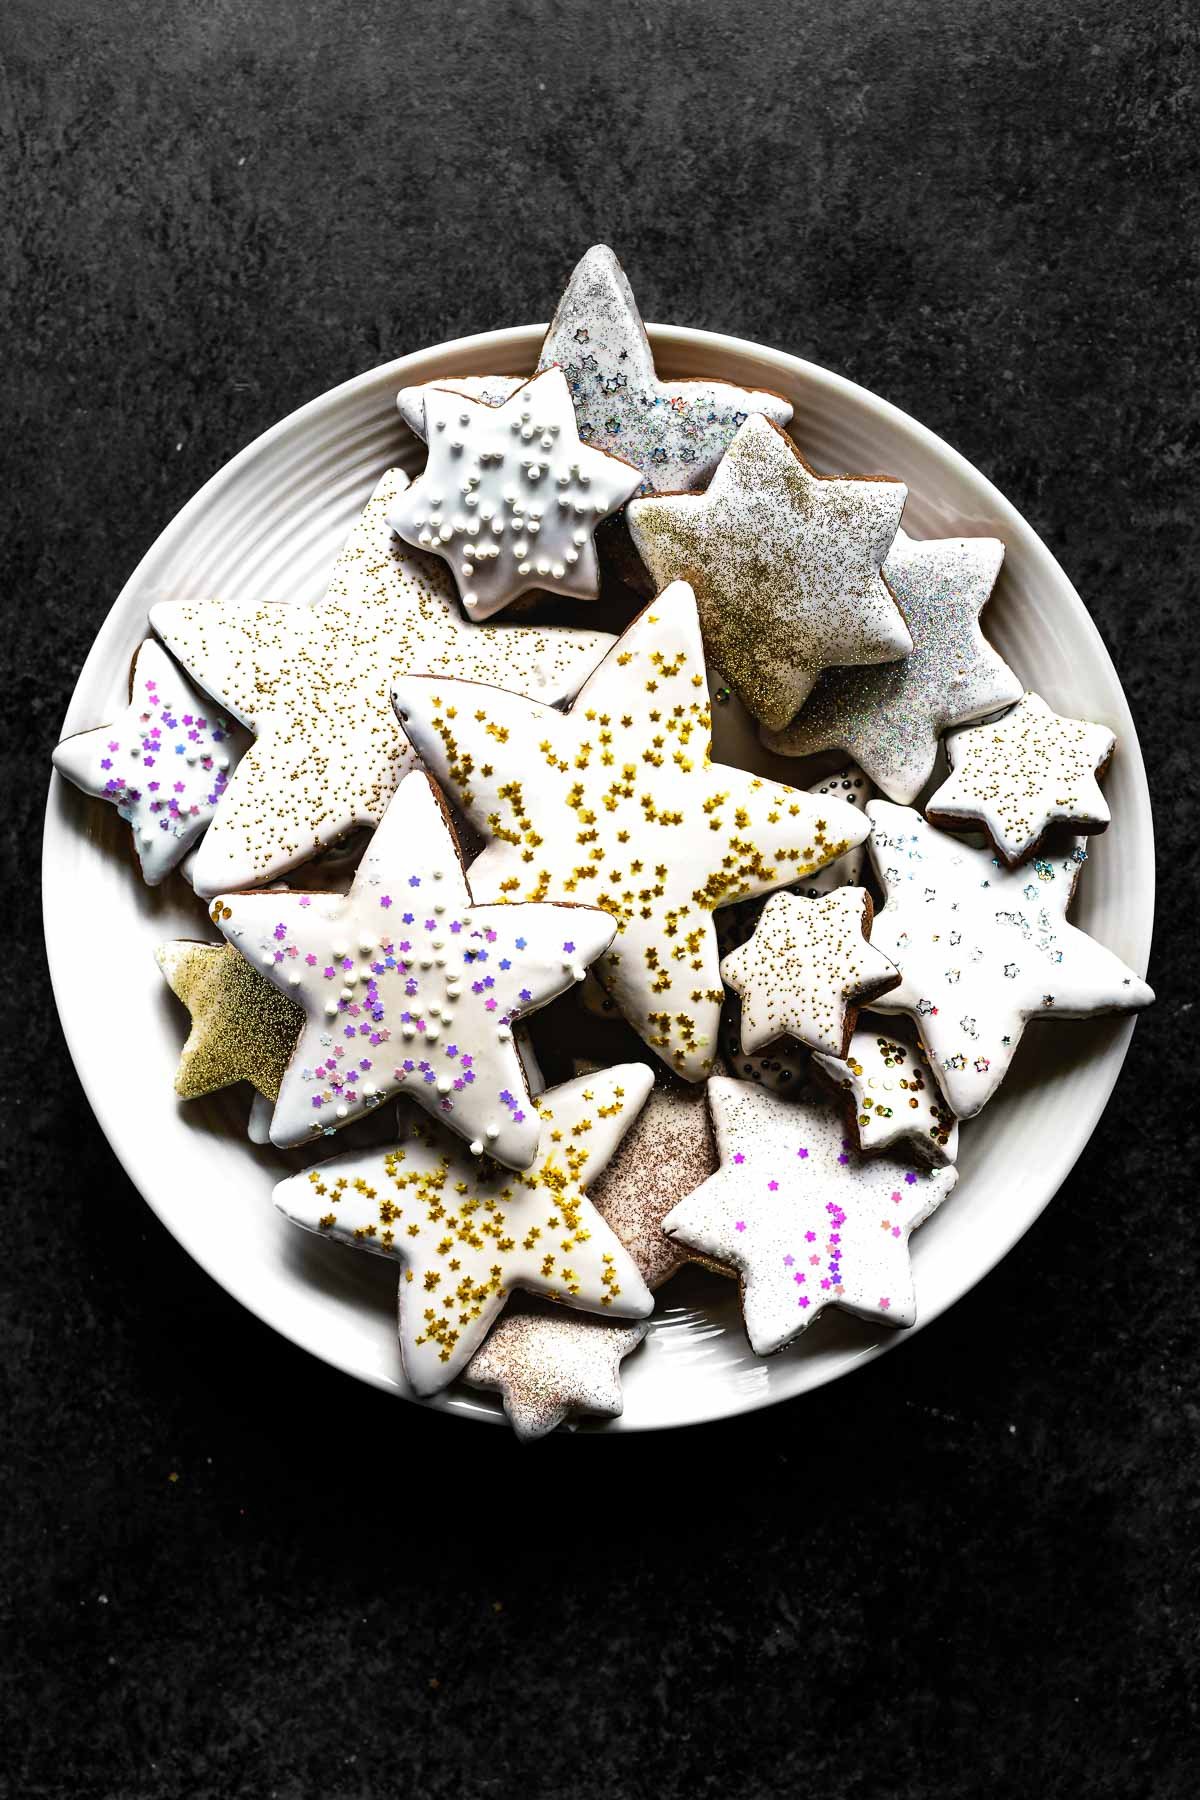 A plate of gingerbread star cookies with sprinkles on a black background